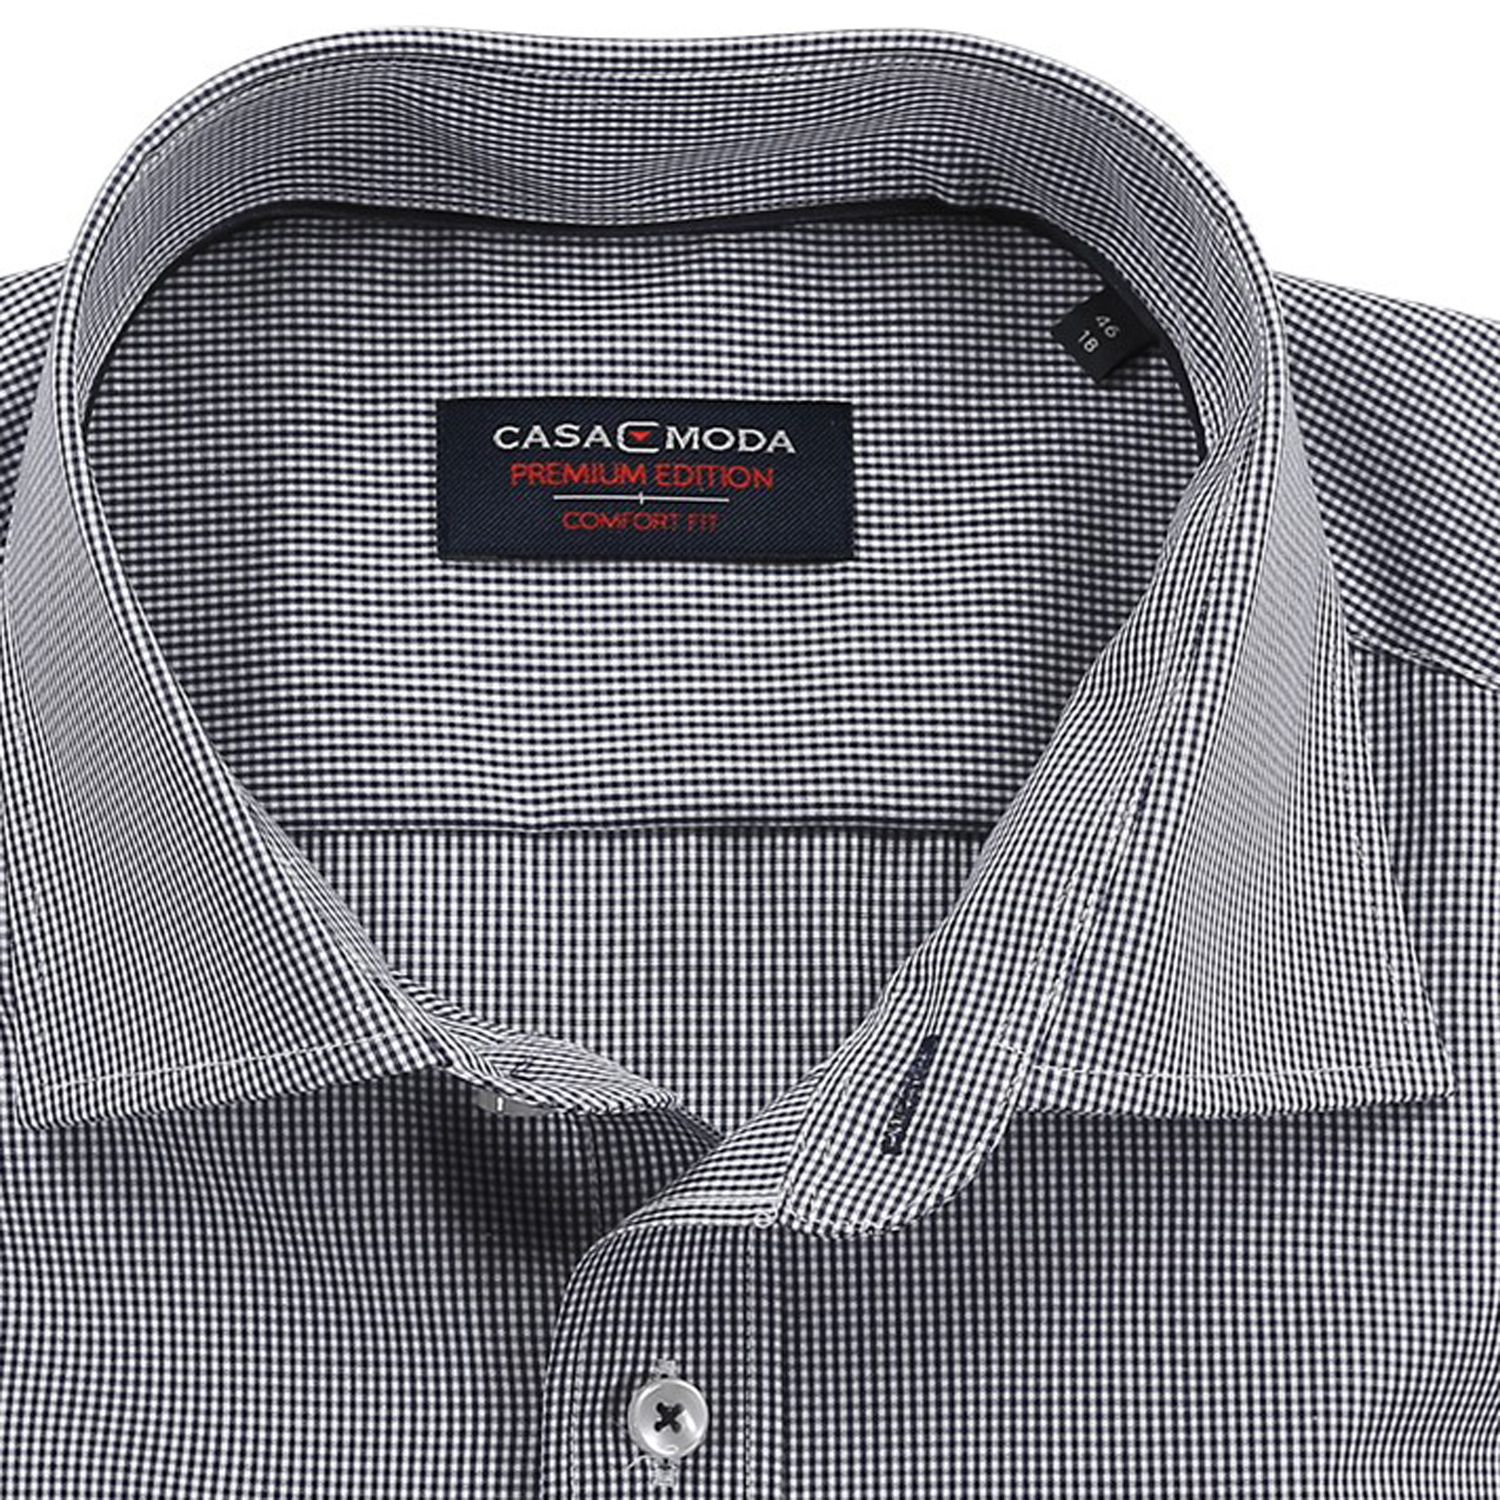 Detail Image to Shirt by Casamoda (longsleeve) black checkered in king sizes up to 7XL